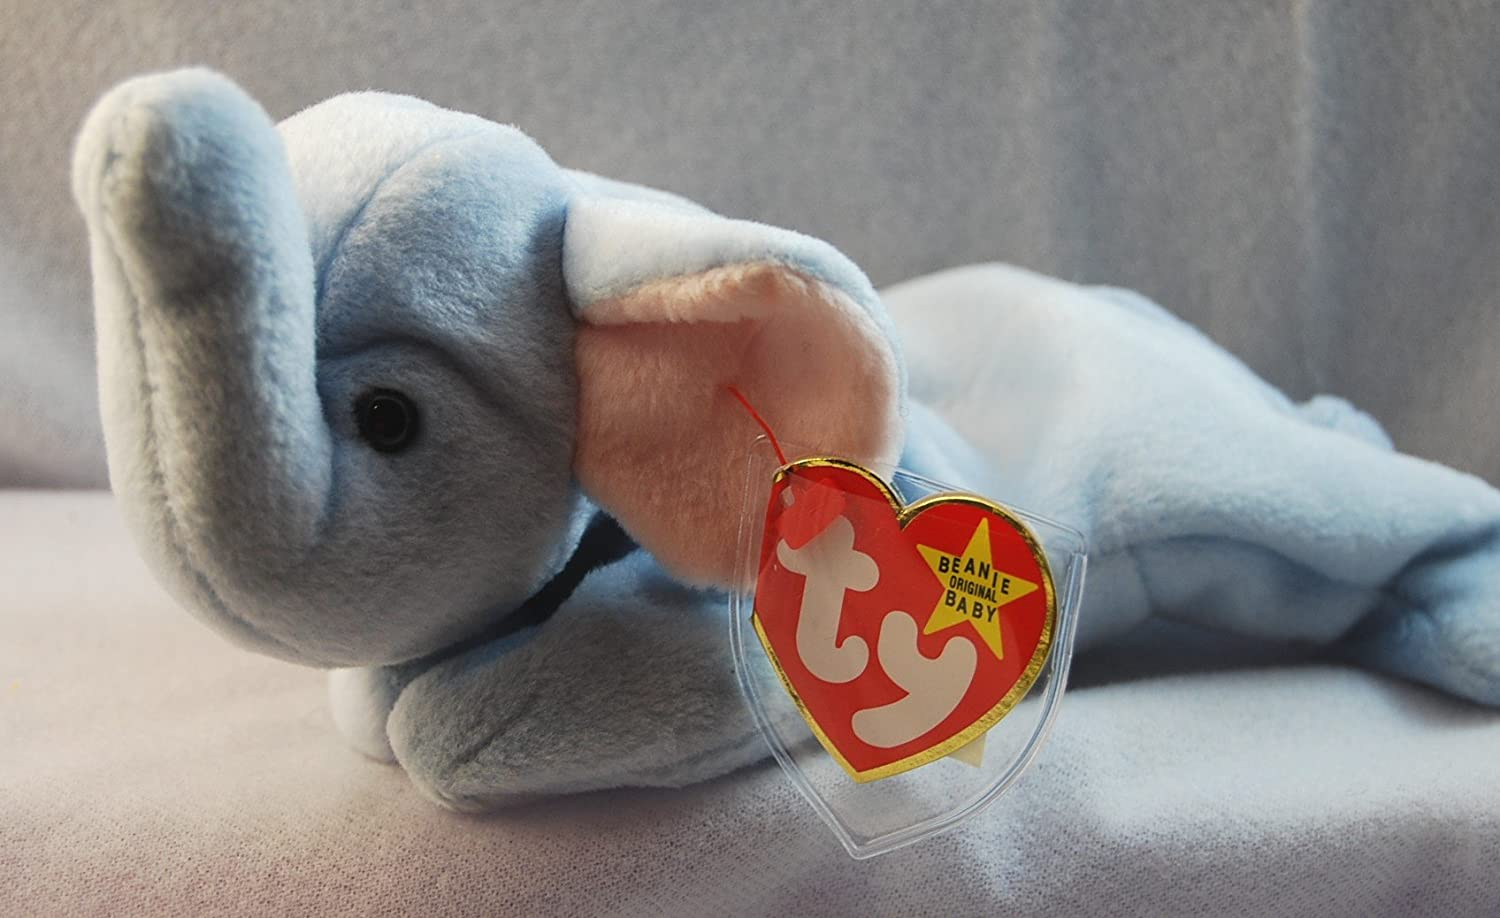 Amazon.com  Ty Beanie Babies - Peanut the Light Blue Elephant  Toys   Games b86708597d4